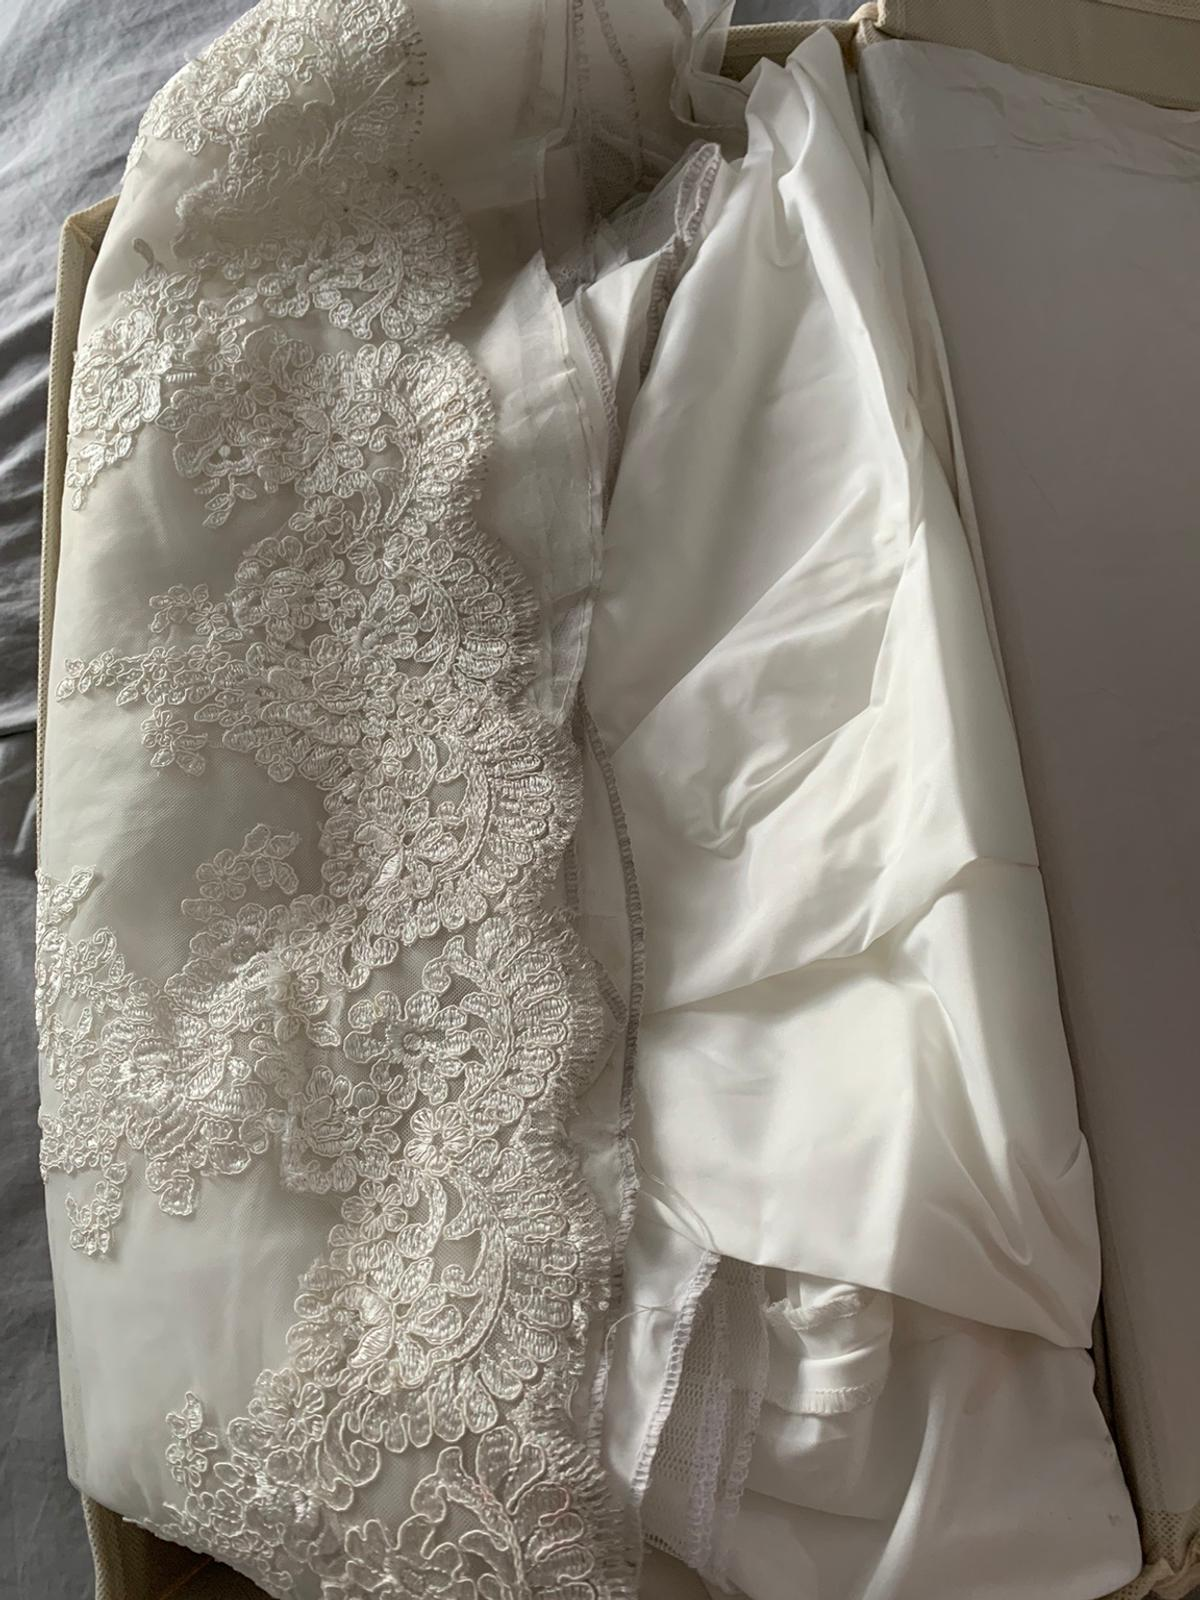 Stunning Wedding Dress £1200 from Boxmoor Brides New Eltham Worn just the once Dress hasn't been washed so bottom is a bit dusty and so would need a clean however there are no rips or tears at all and it's in perfect condition